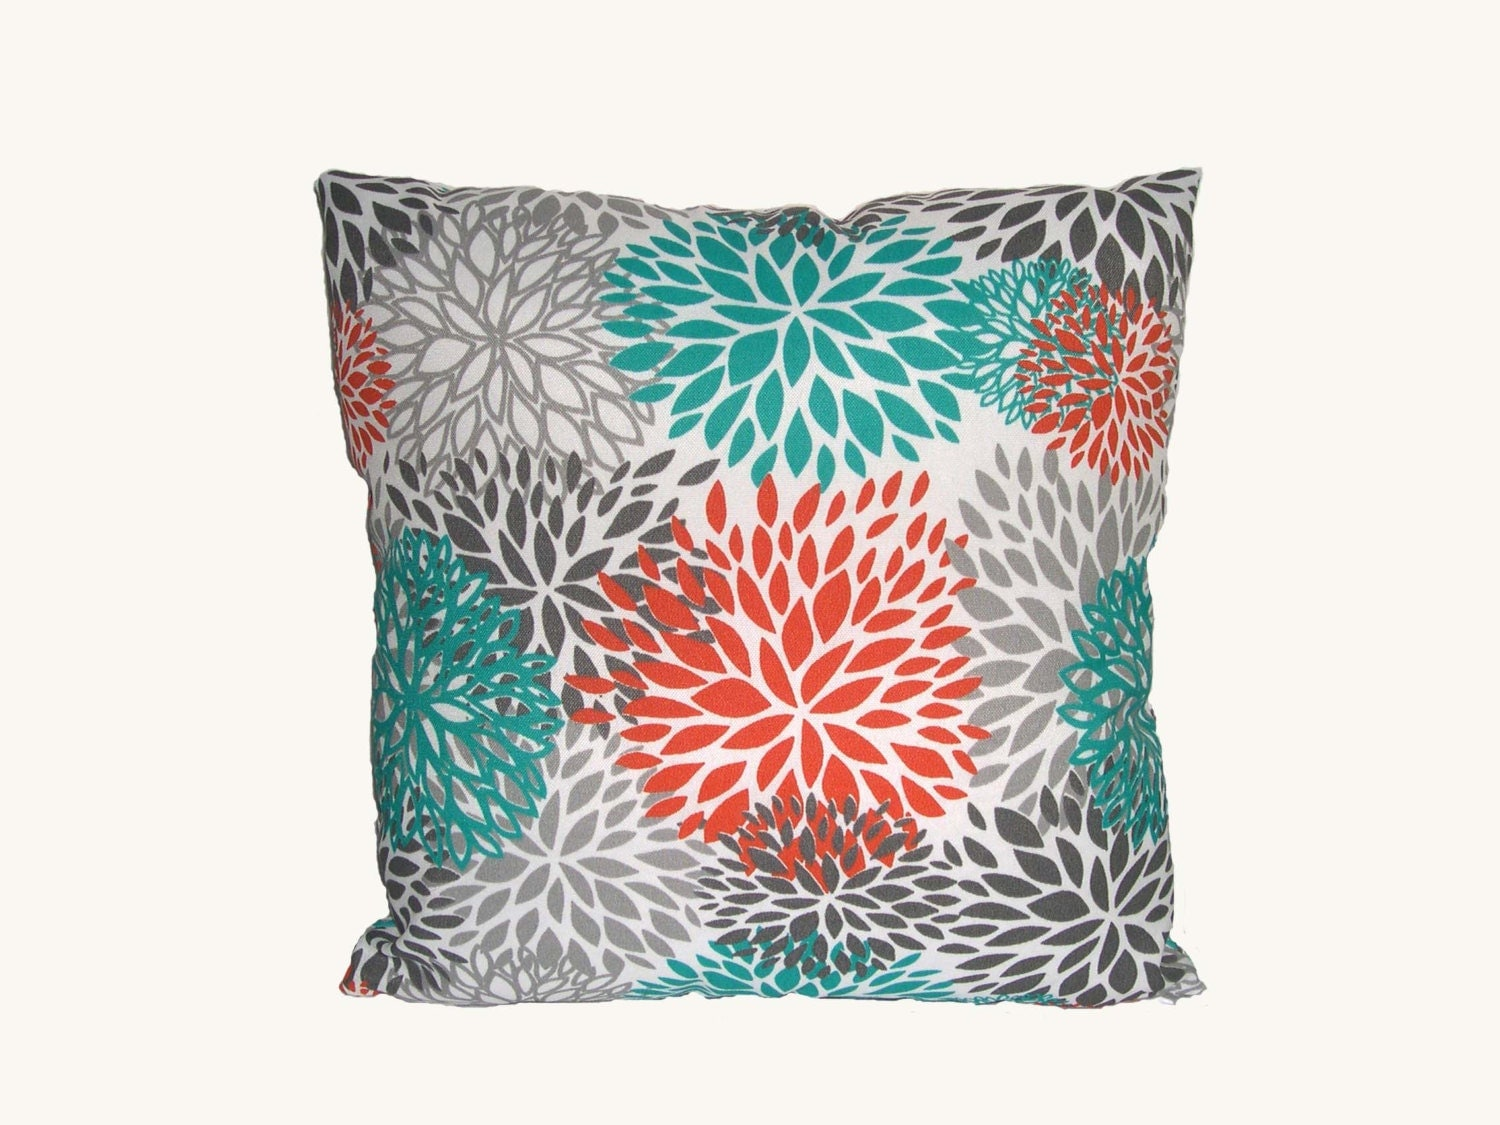 decorative pillows gray teal orange and white pillow cover. Black Bedroom Furniture Sets. Home Design Ideas